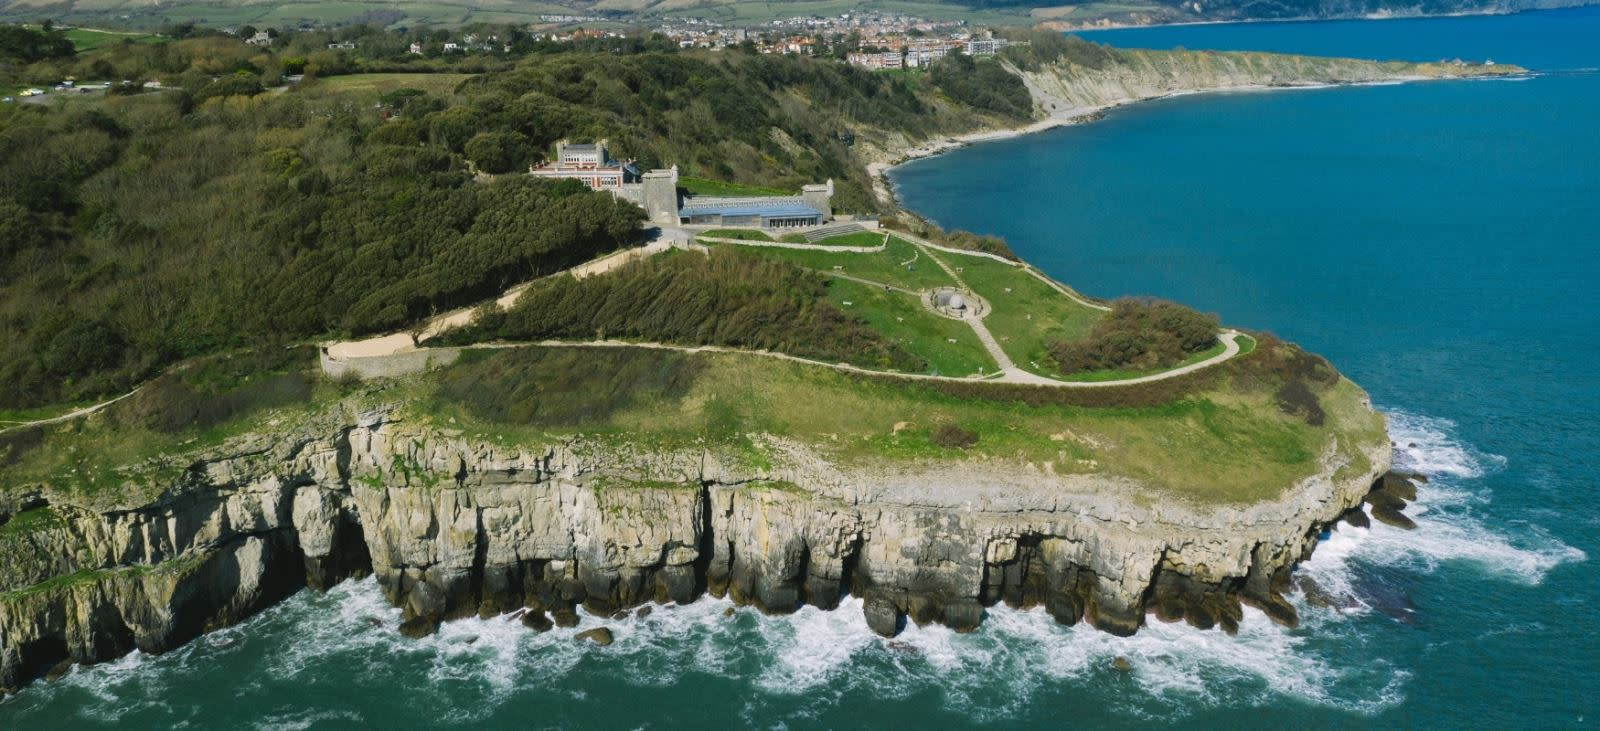 Durlston Country Park and National Nature Reserve in Swanage, Dorset. Photo credit to Harbour Media.